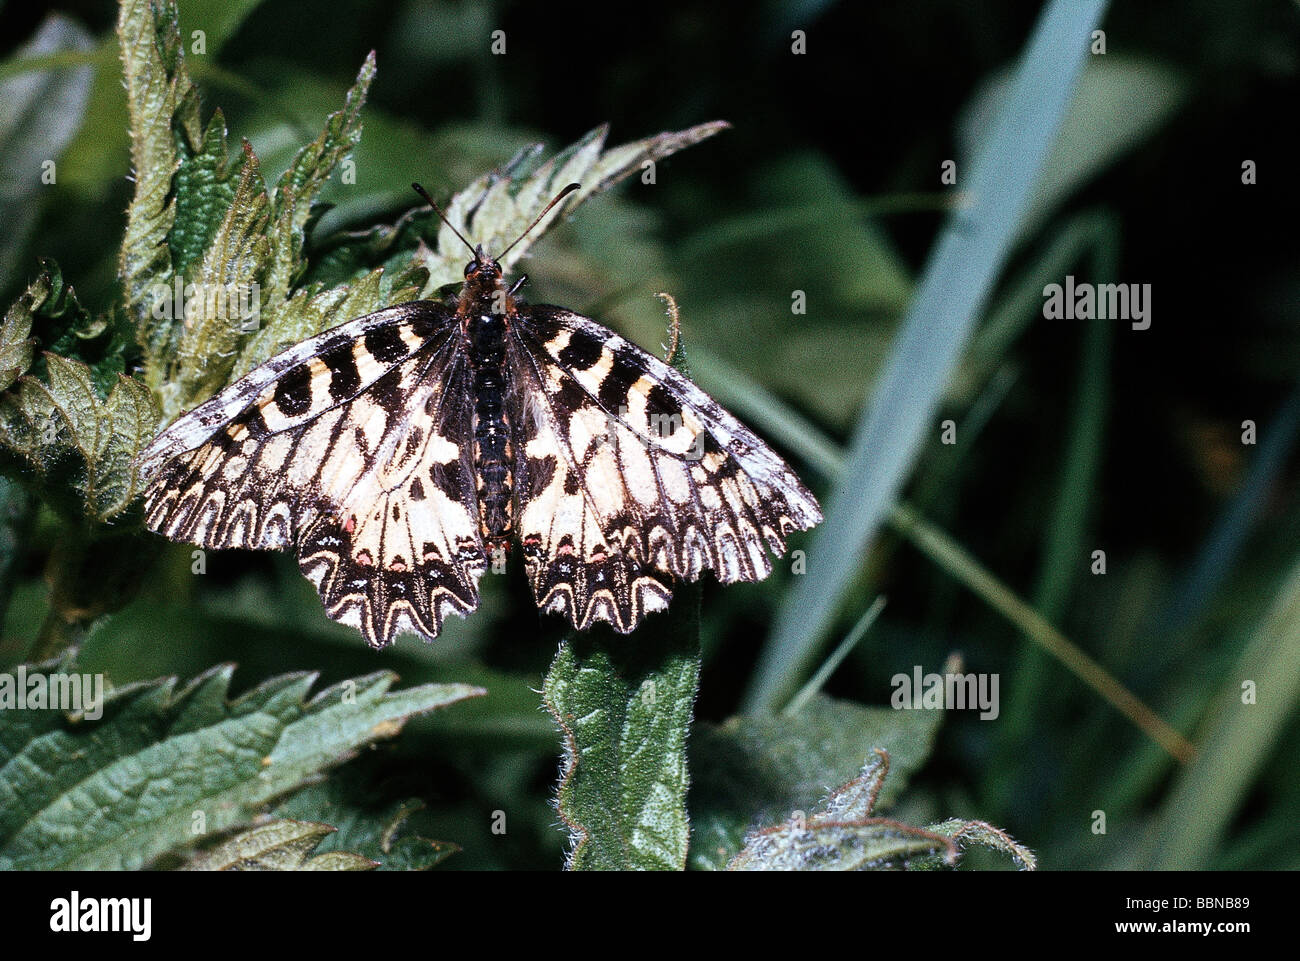 zoology, animals, insect butterflies Southern Festoon Zerynthia polyxena at plant, distribution: Eastern Mediterranean, - Stock Image